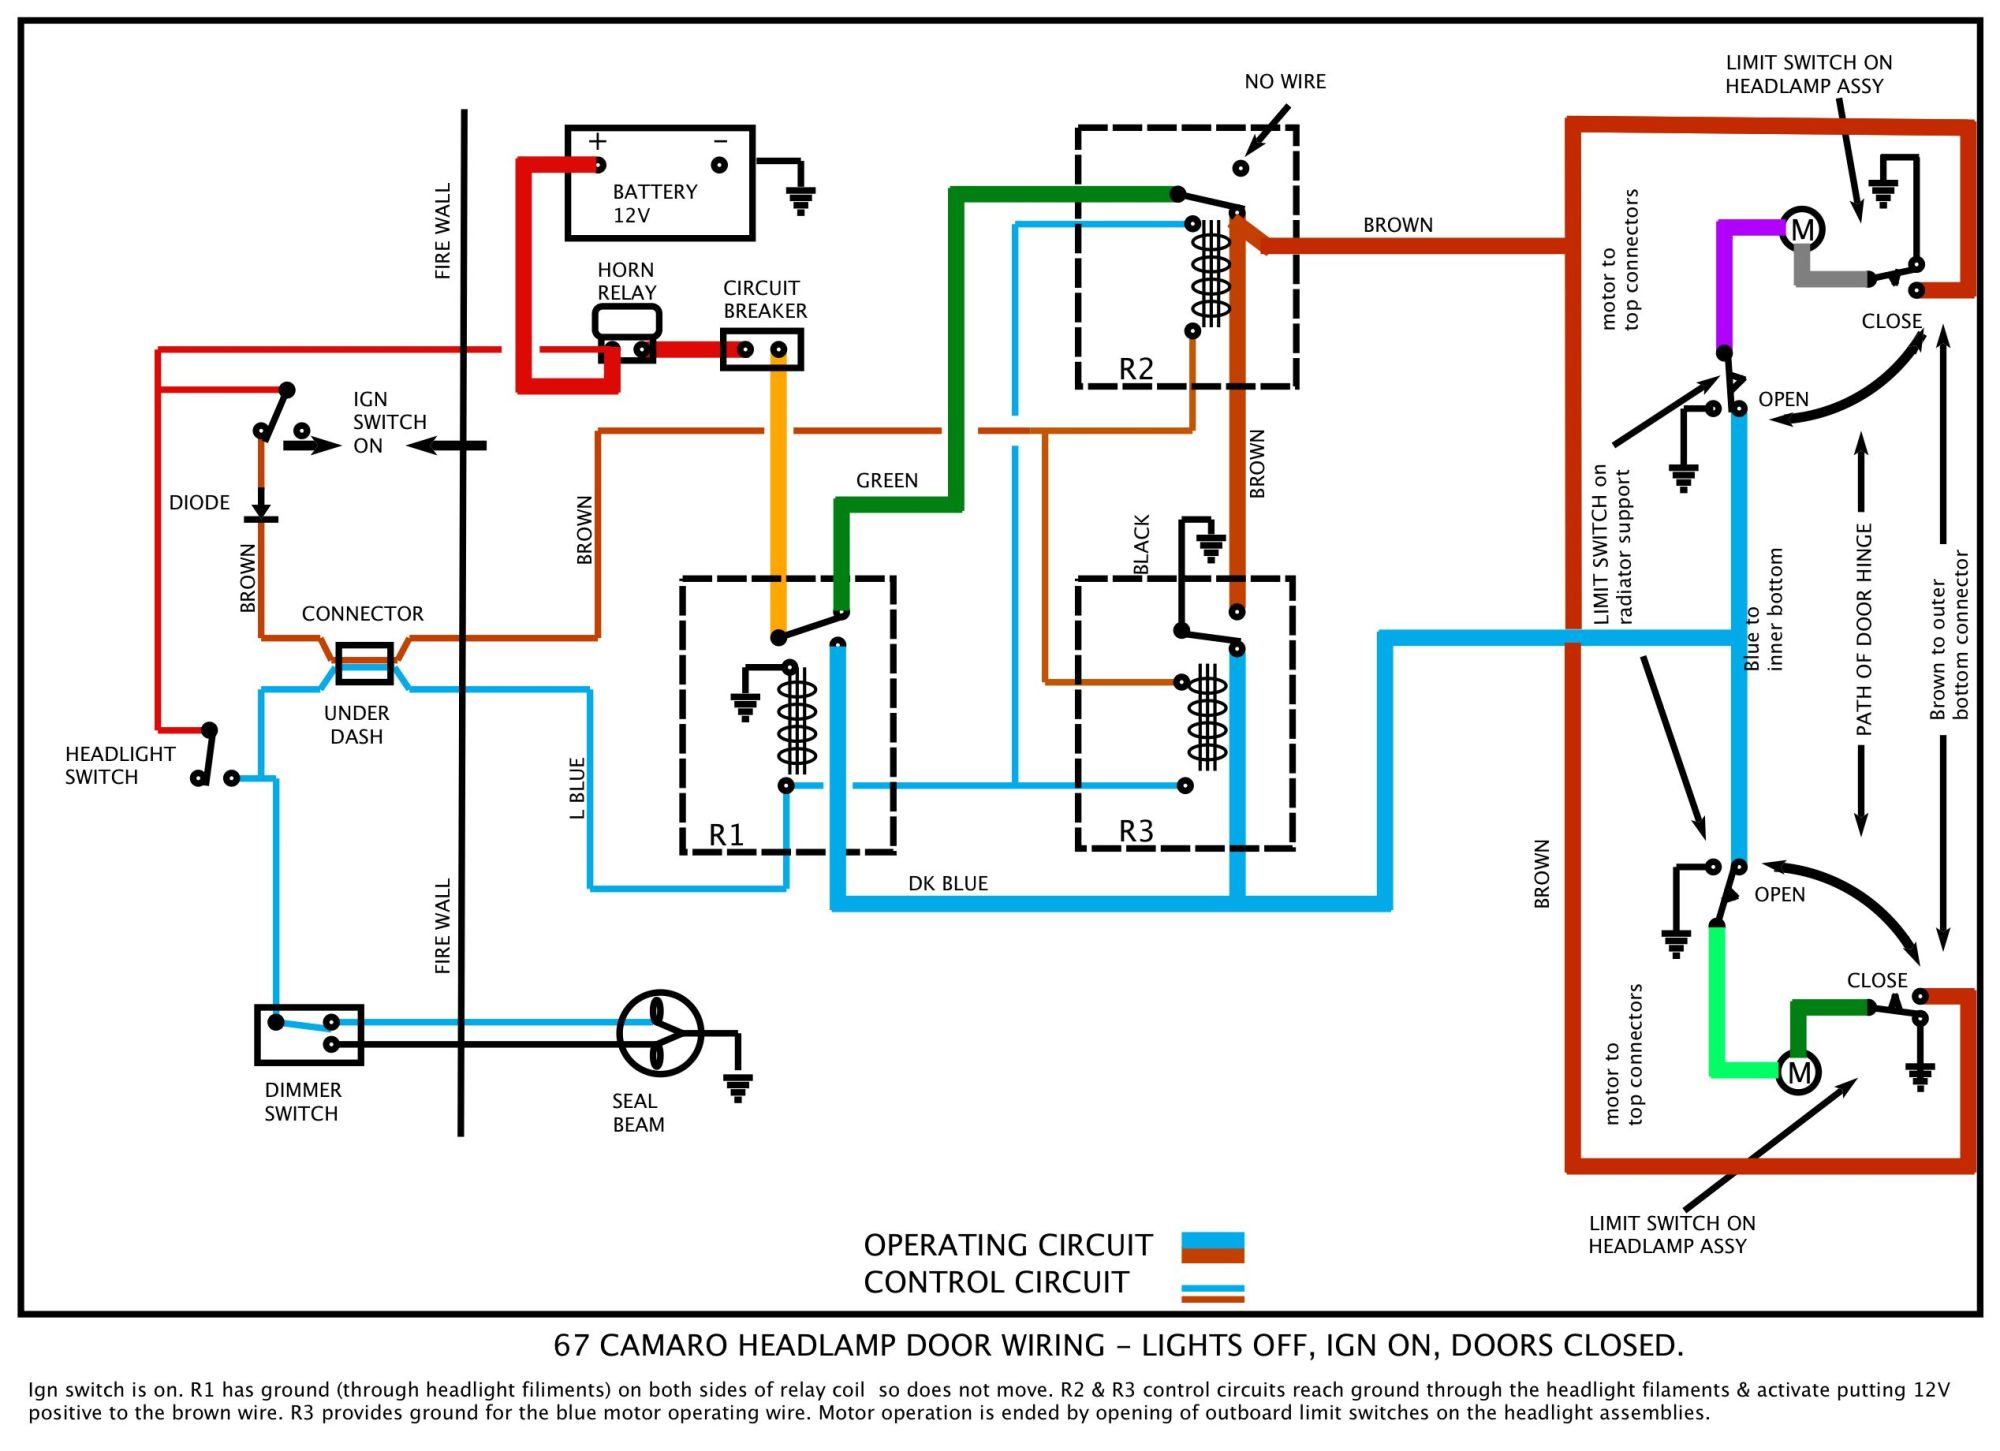 hight resolution of painless wiring diagram for camaro wiring diagrams scematic camaro fuel tank wiring diagram camaro wiring diagram